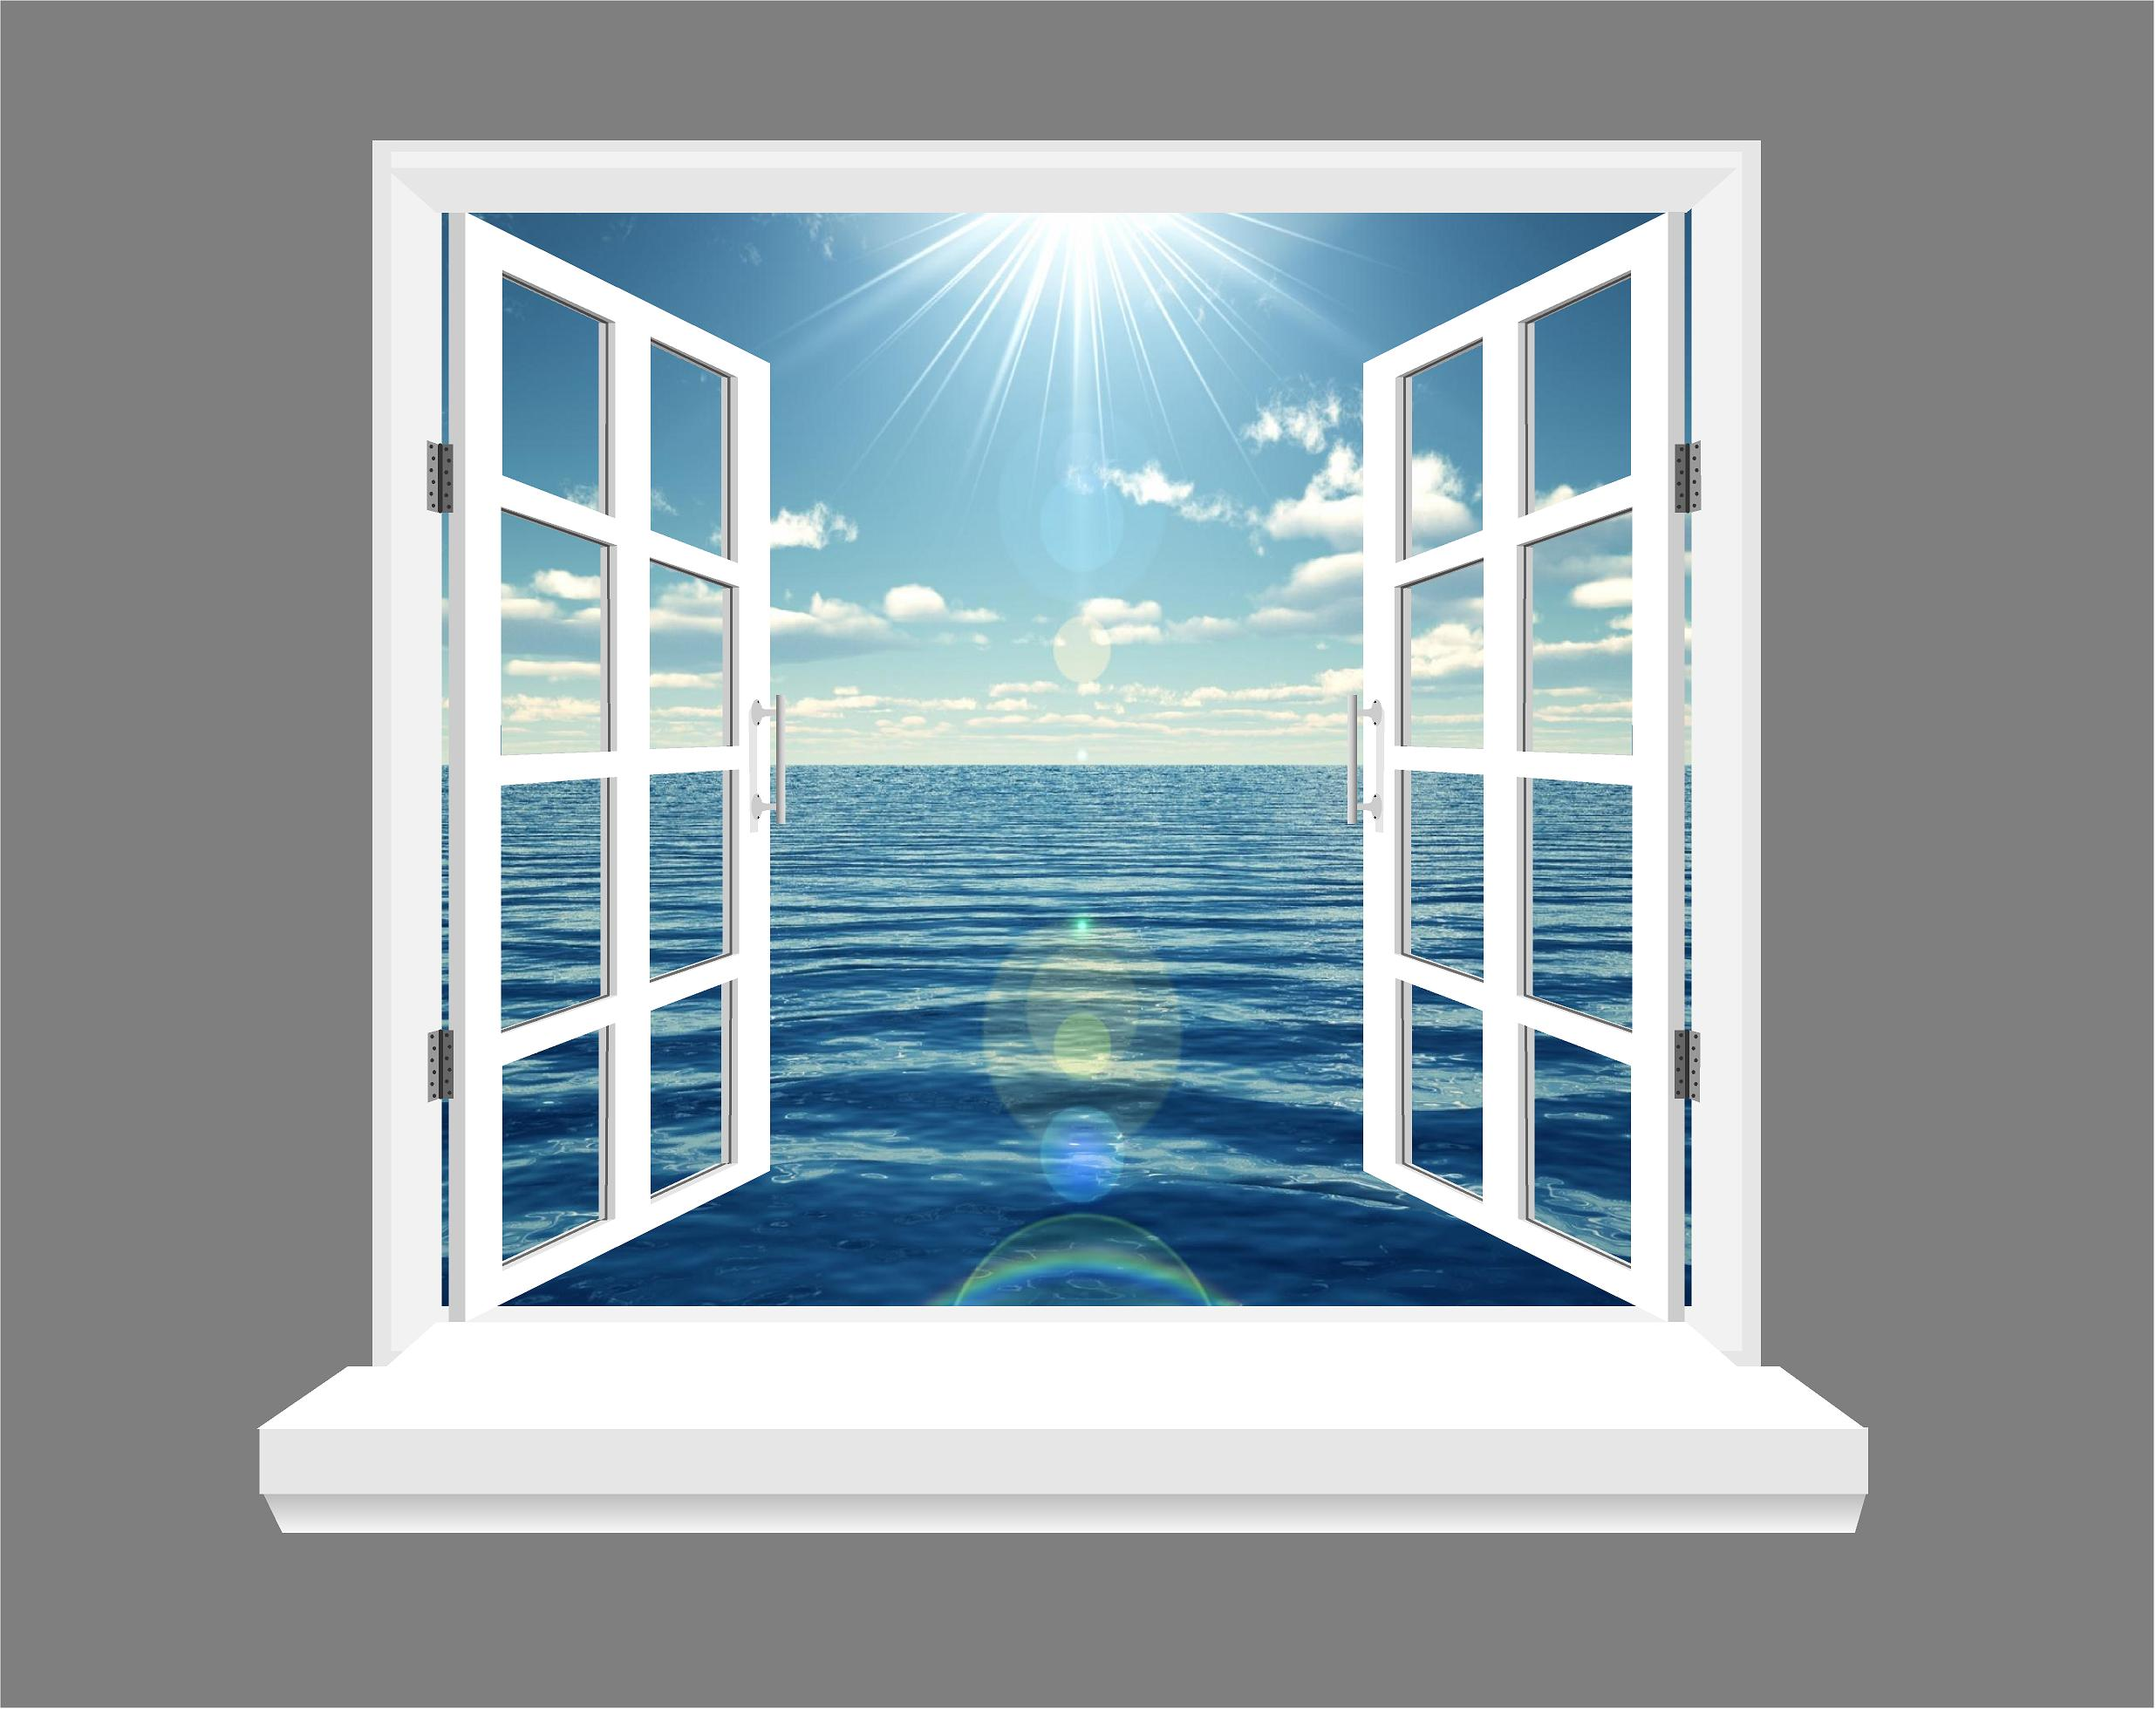 Ocean and Blue Skies 3D Window view wall art sticker & Ocean and Blue Skies 3D Window view wall art sticker